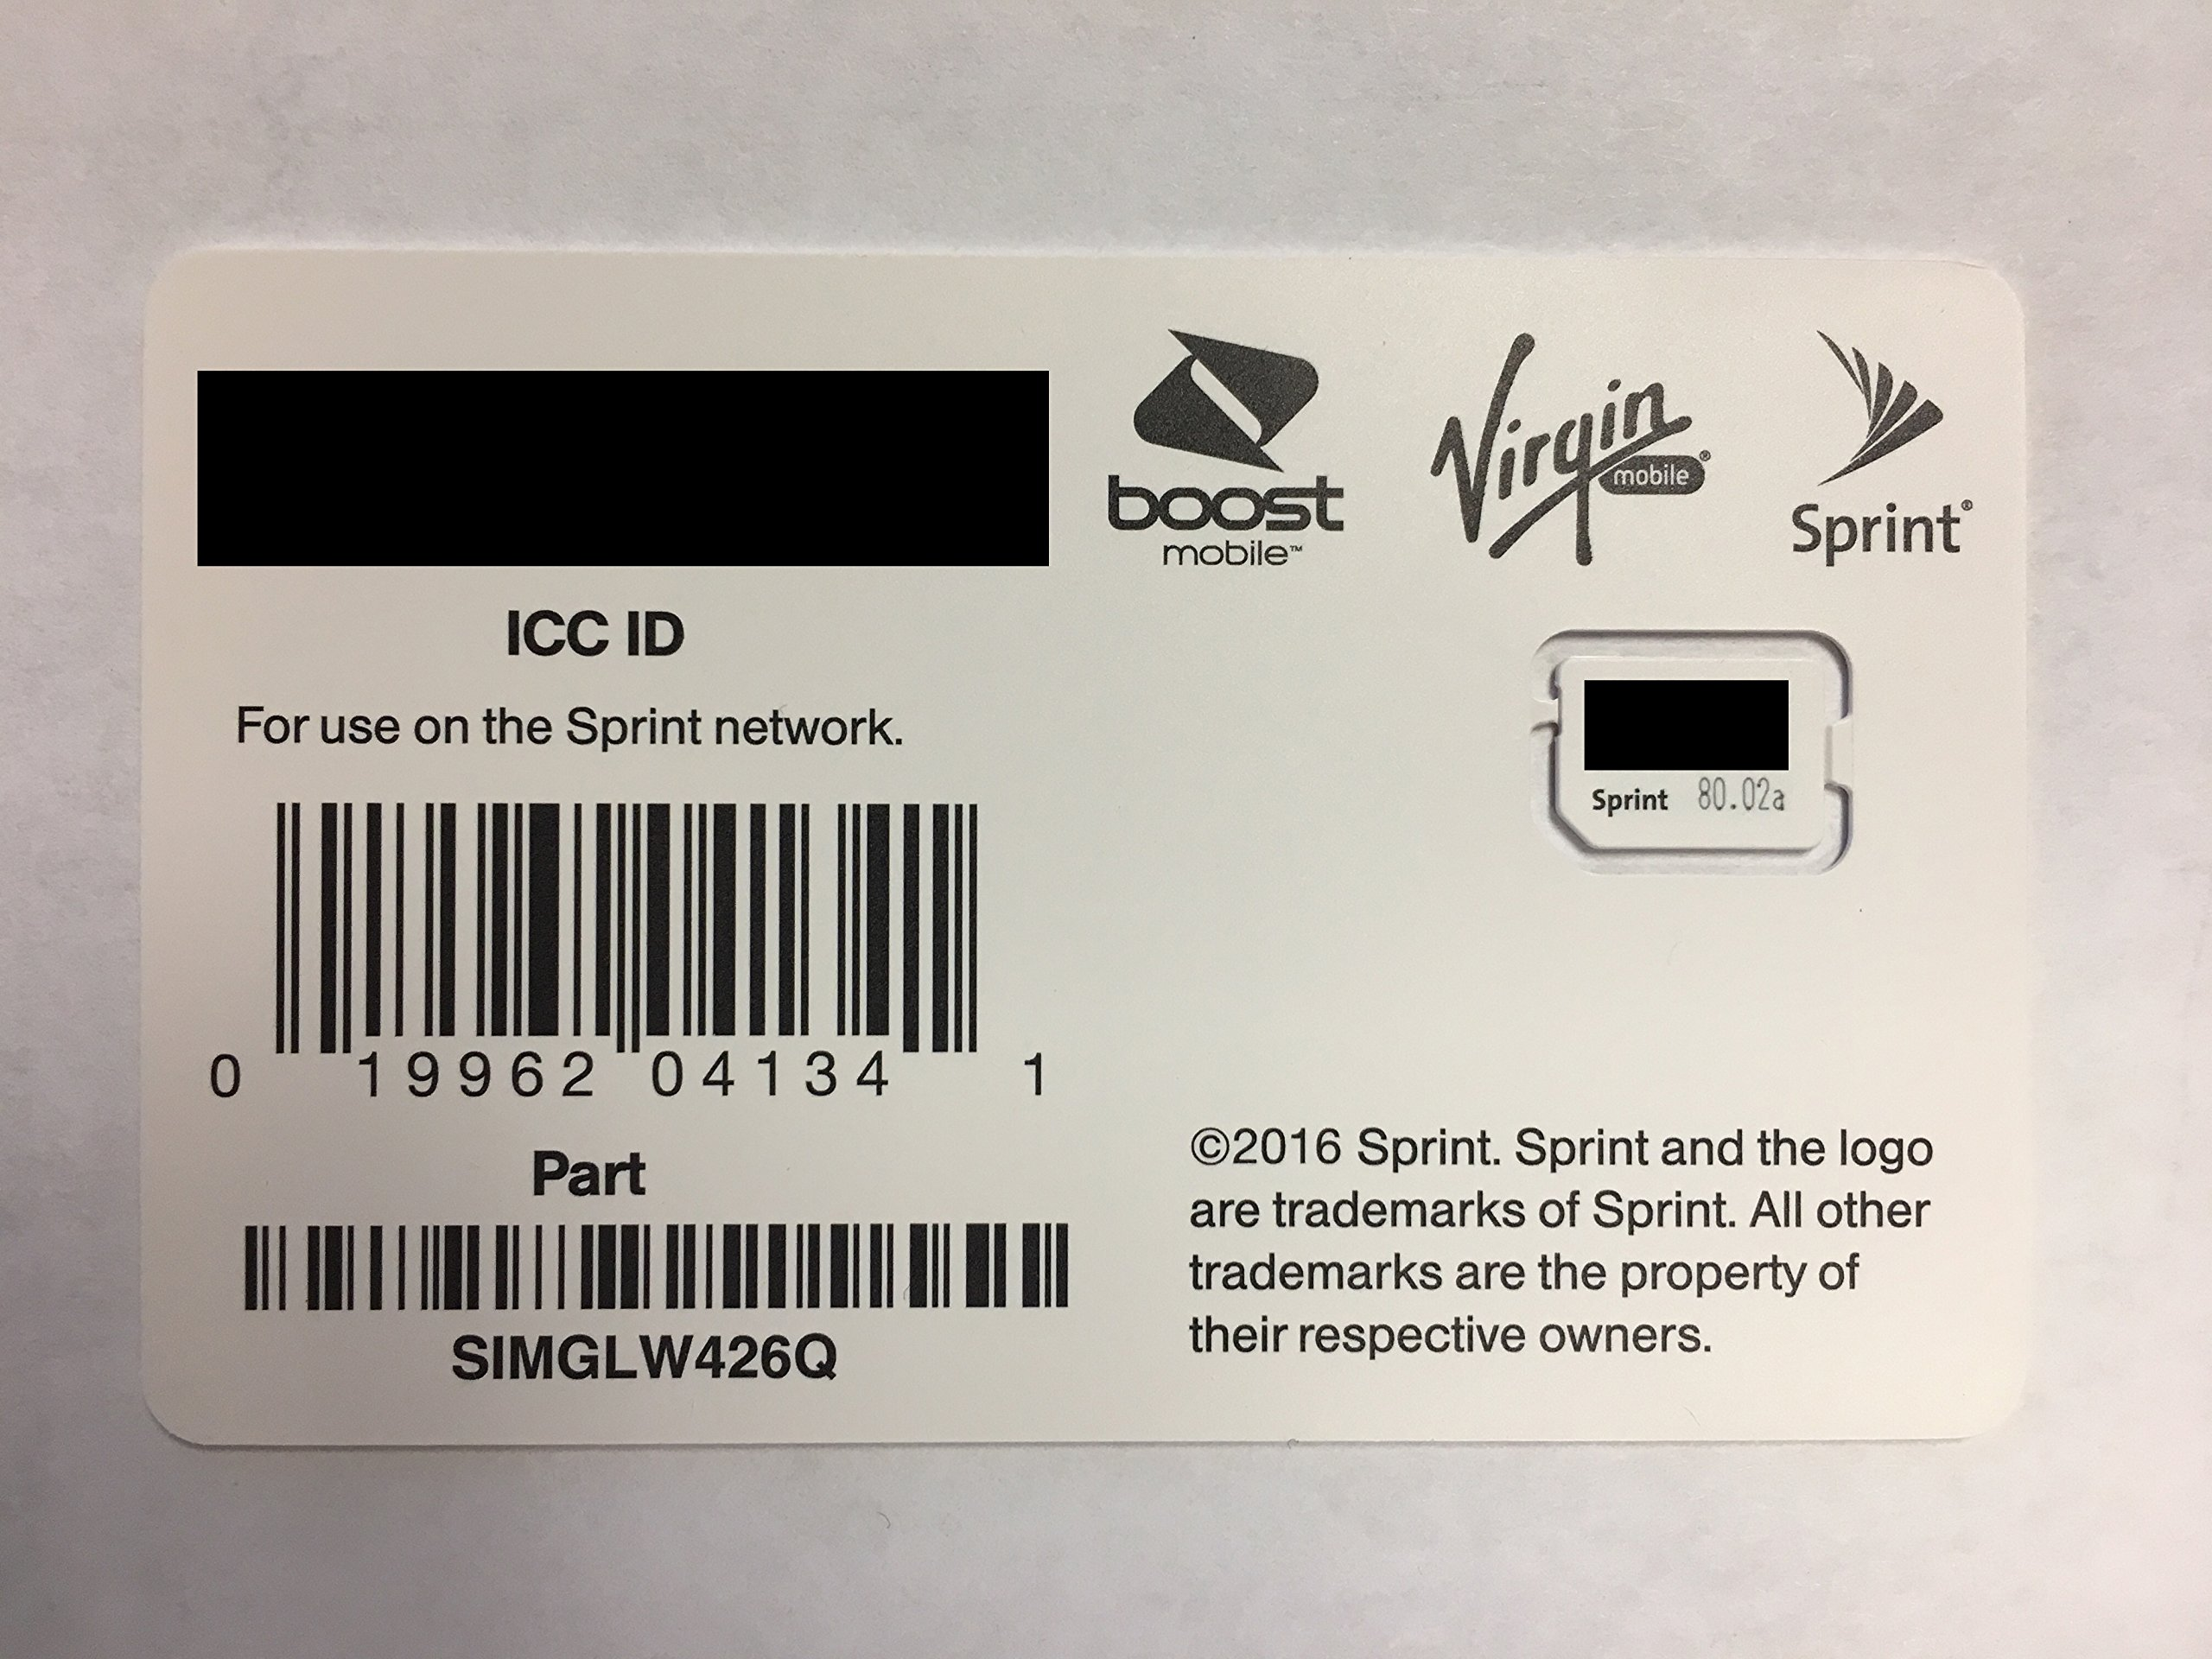 Sprint Boost Virgin Mobile Nano SIM Card ICCID SIMGLW426Q iPhone 8, 8+, iPhone X